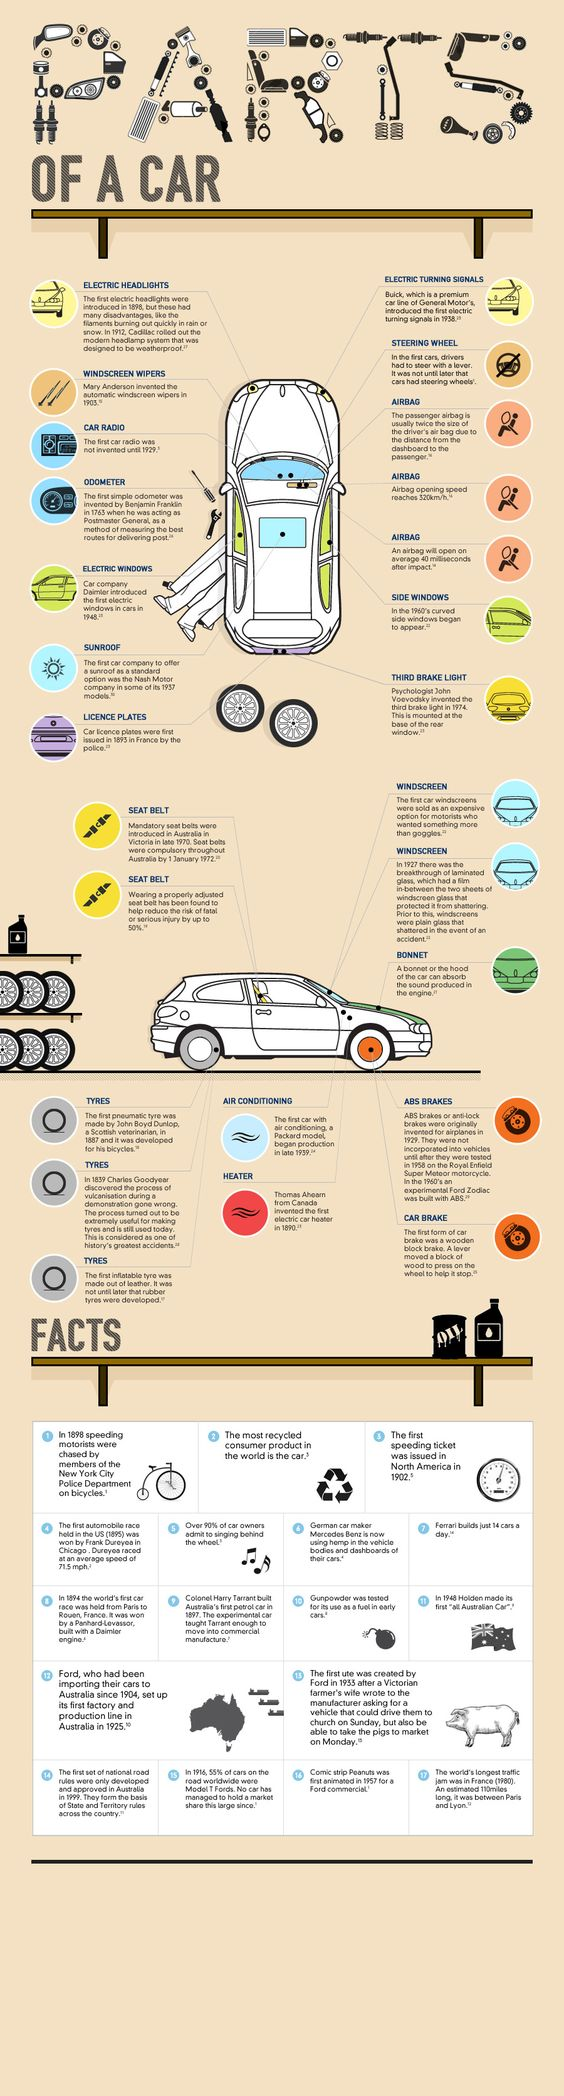 Cars | Tipsögraphic | More cars tips at http://www.tipsographic.com/